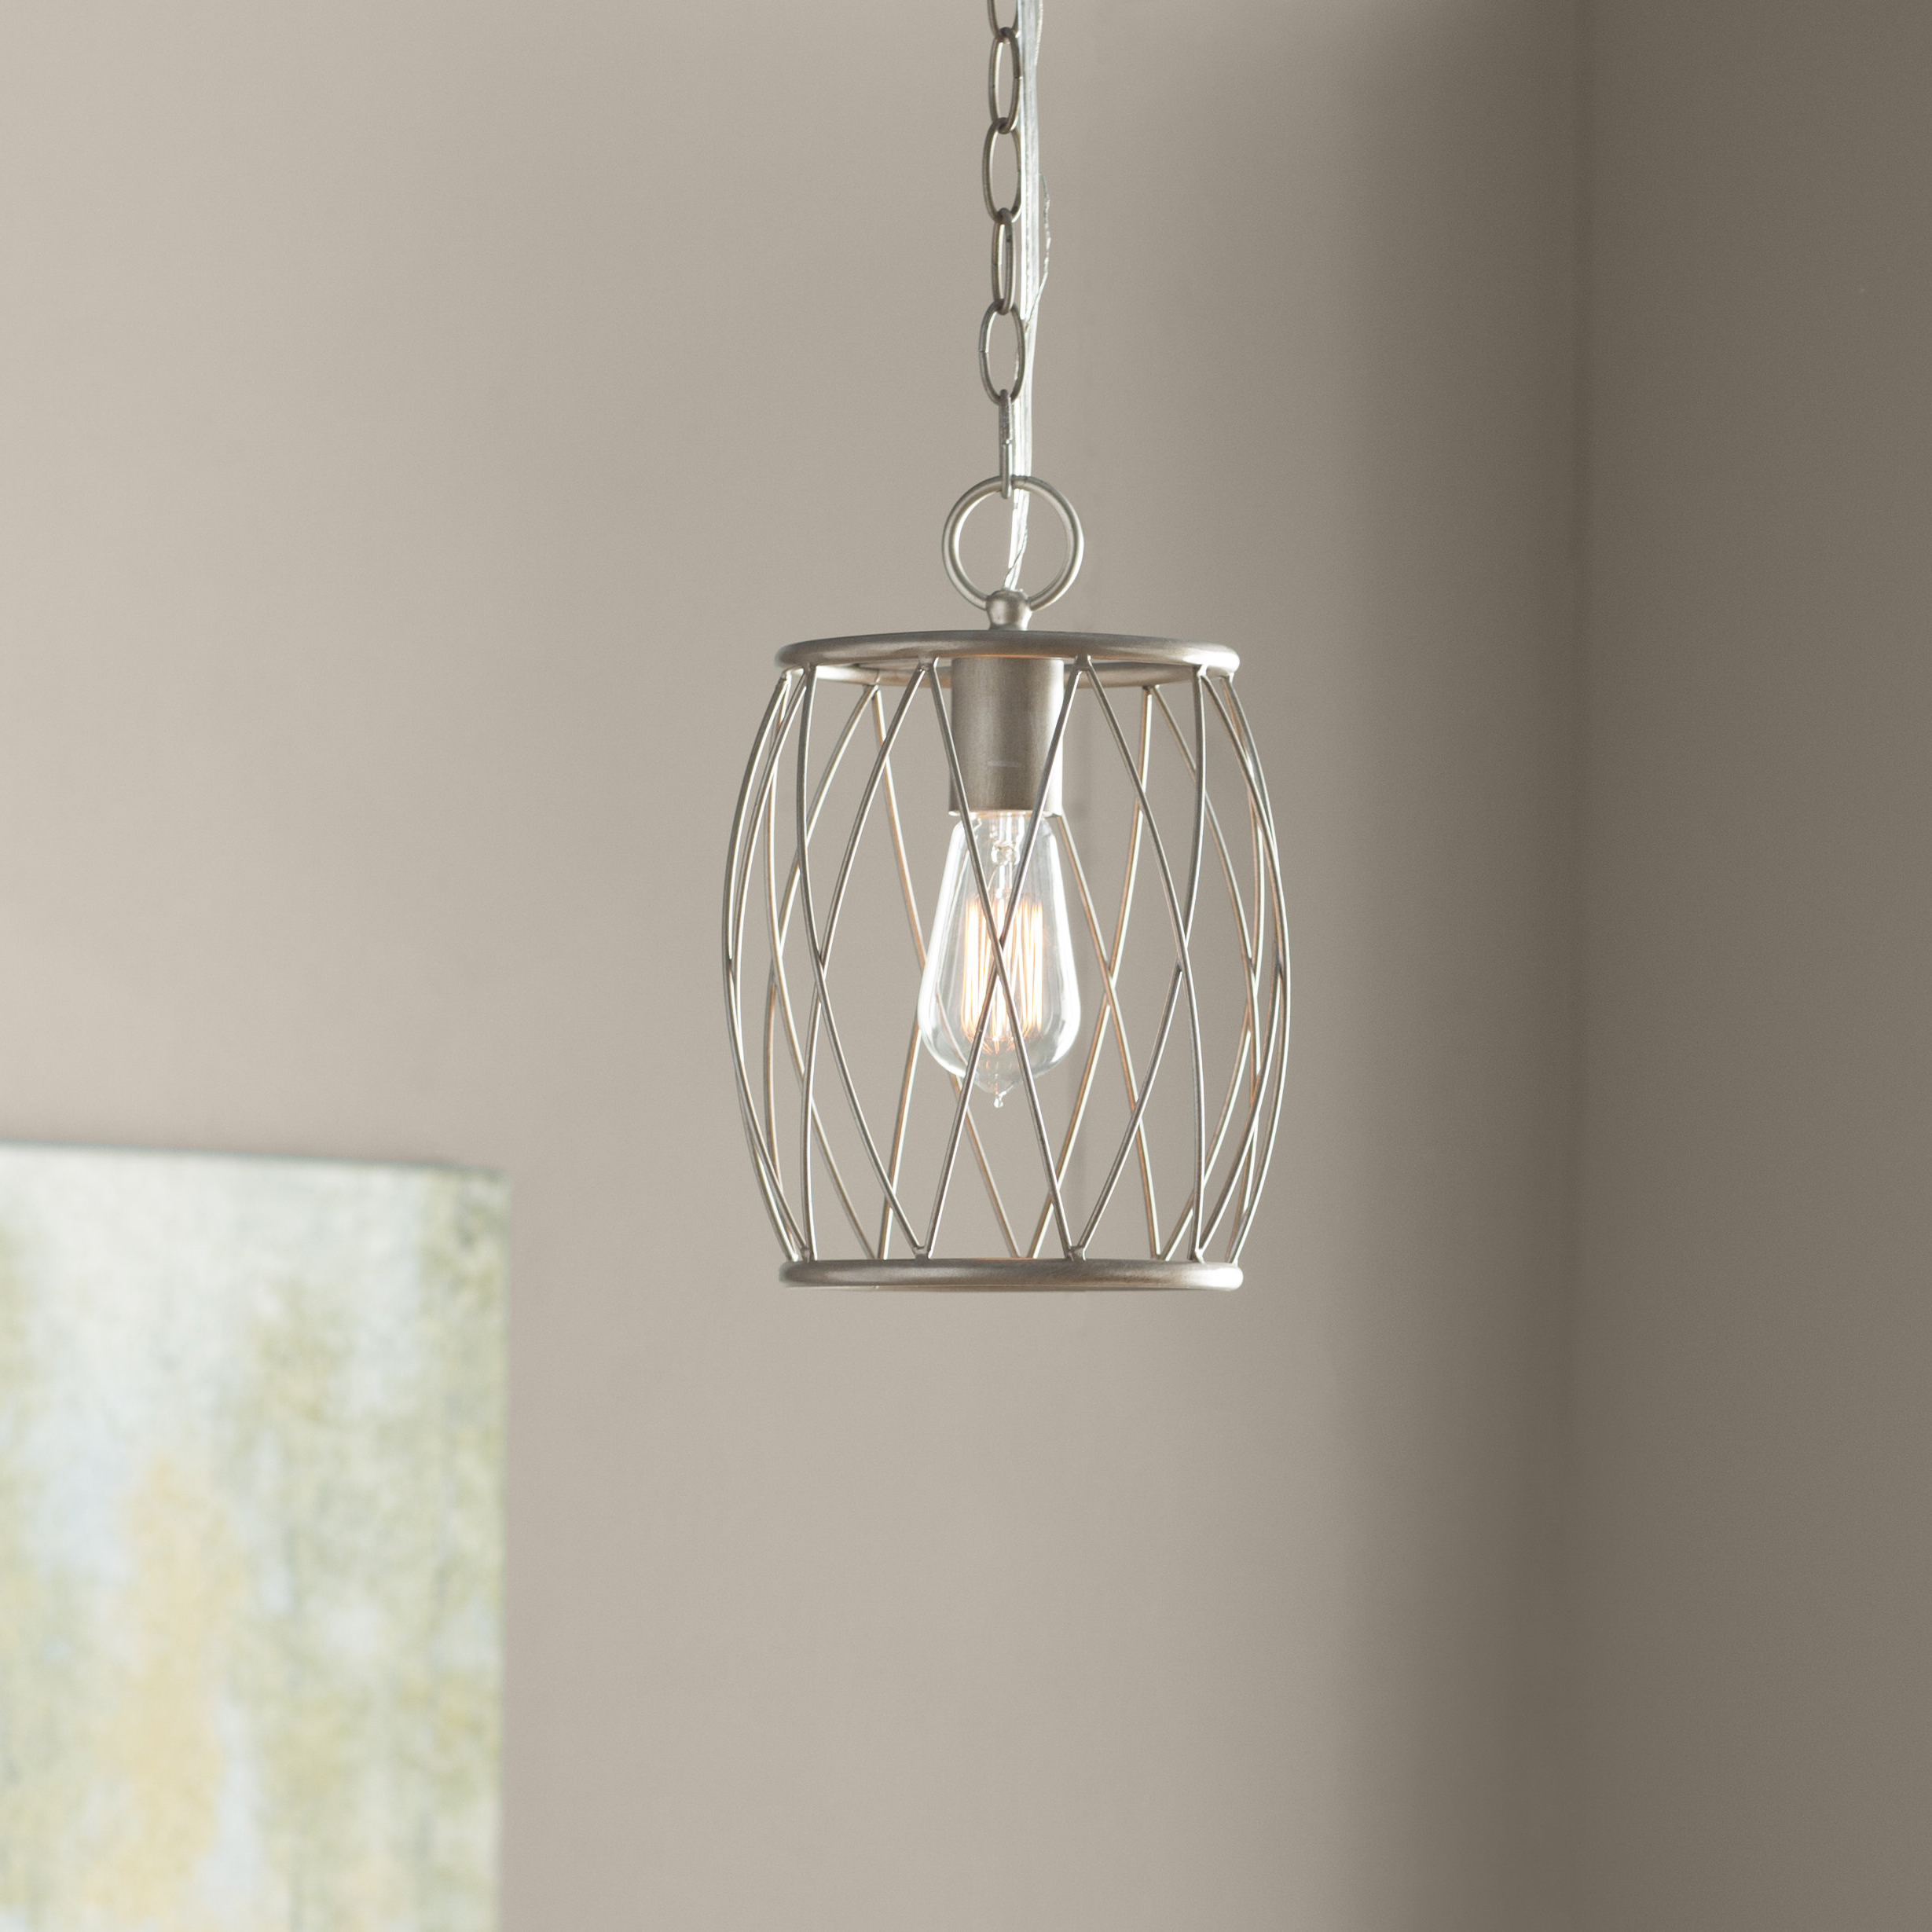 Newest Poynter 1-Light Cylinder Pendant with regard to Poynter 1-Light Single Cylinder Pendants